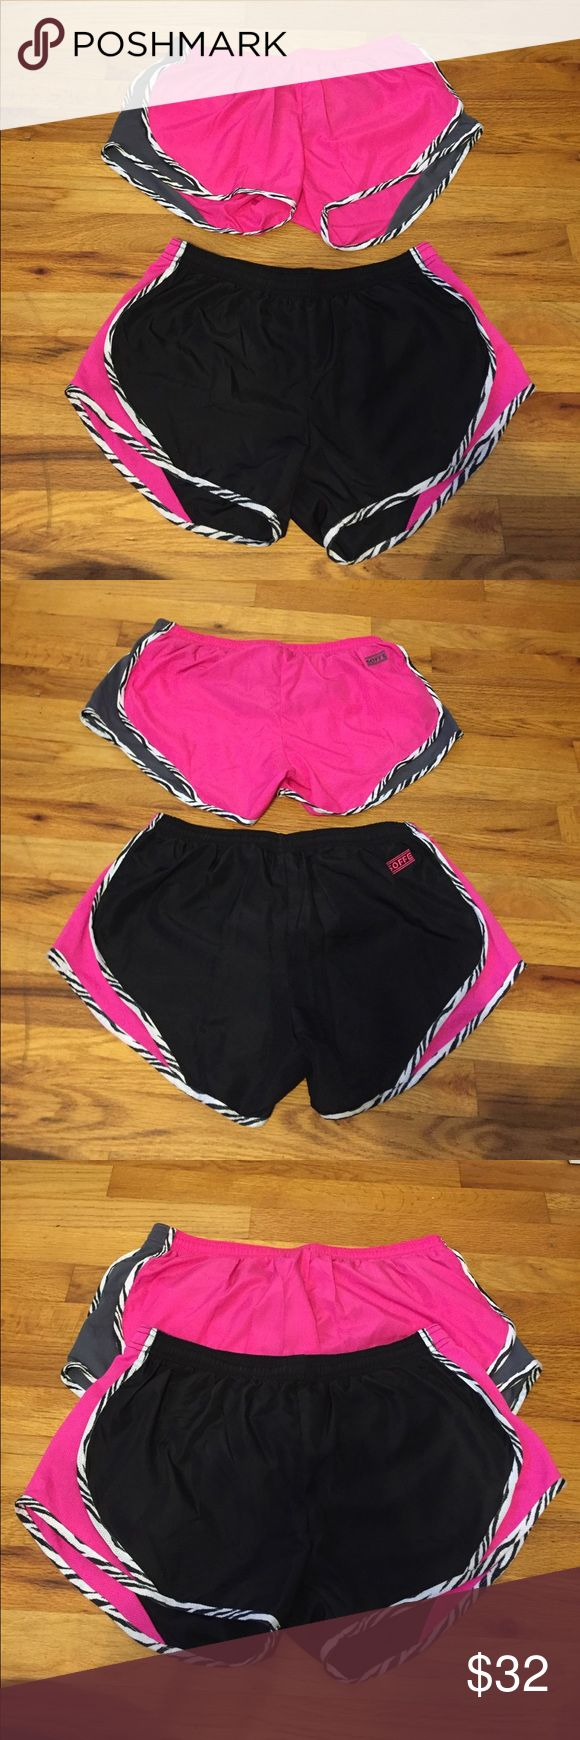 Soffee Shorts Bundle Worn once or twice each. In great condition. Soffe Shorts